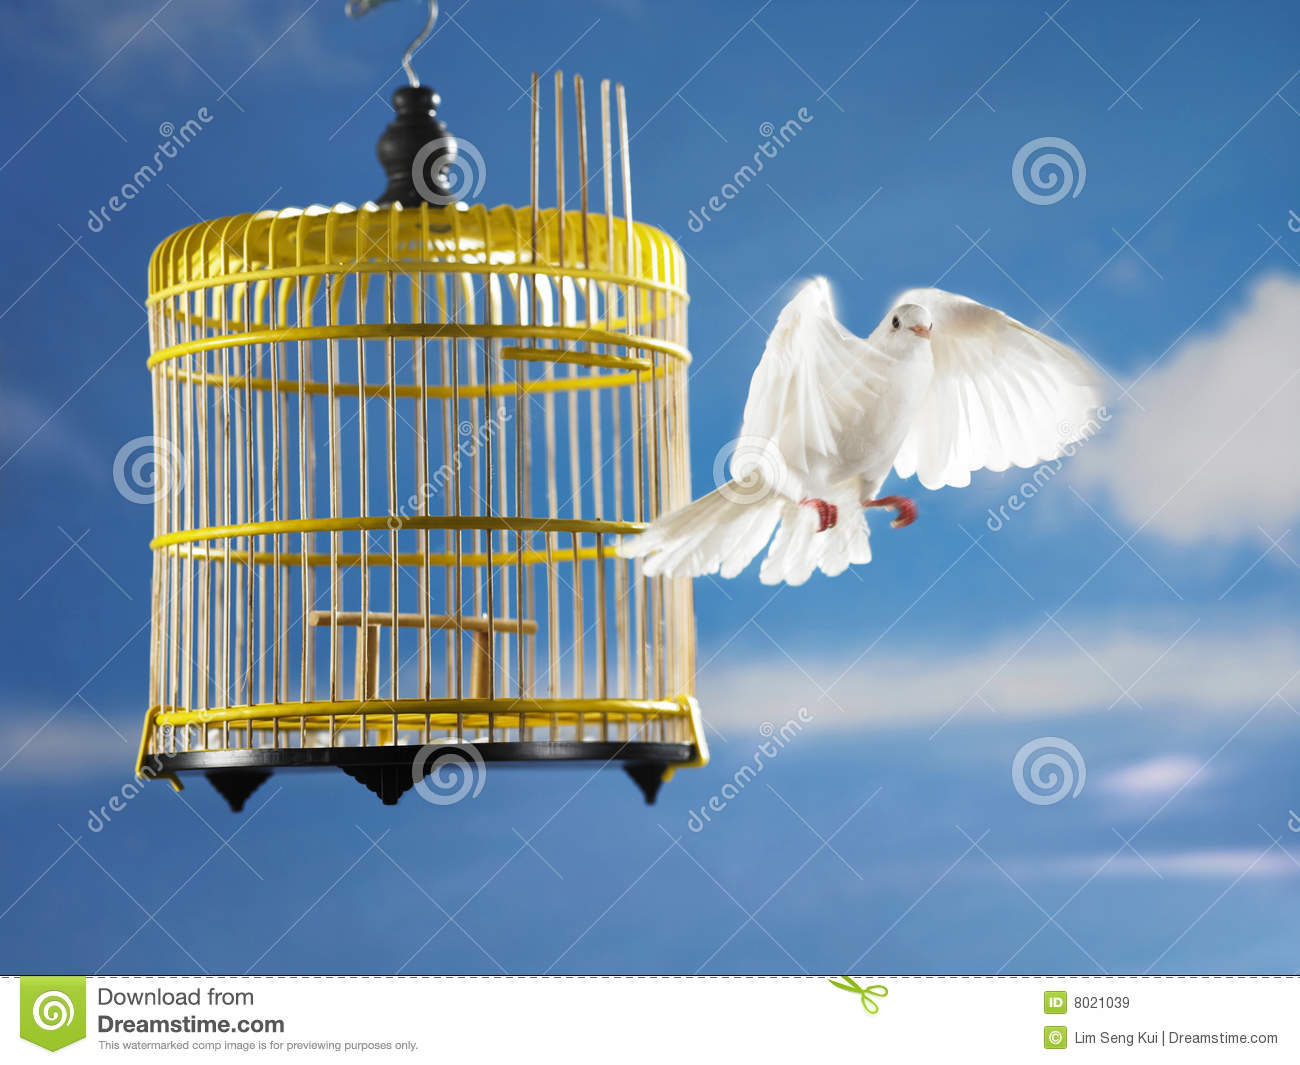 Royalty Free Stock Images  Pigeon escape from cage for freedomBird Freedom From Cage